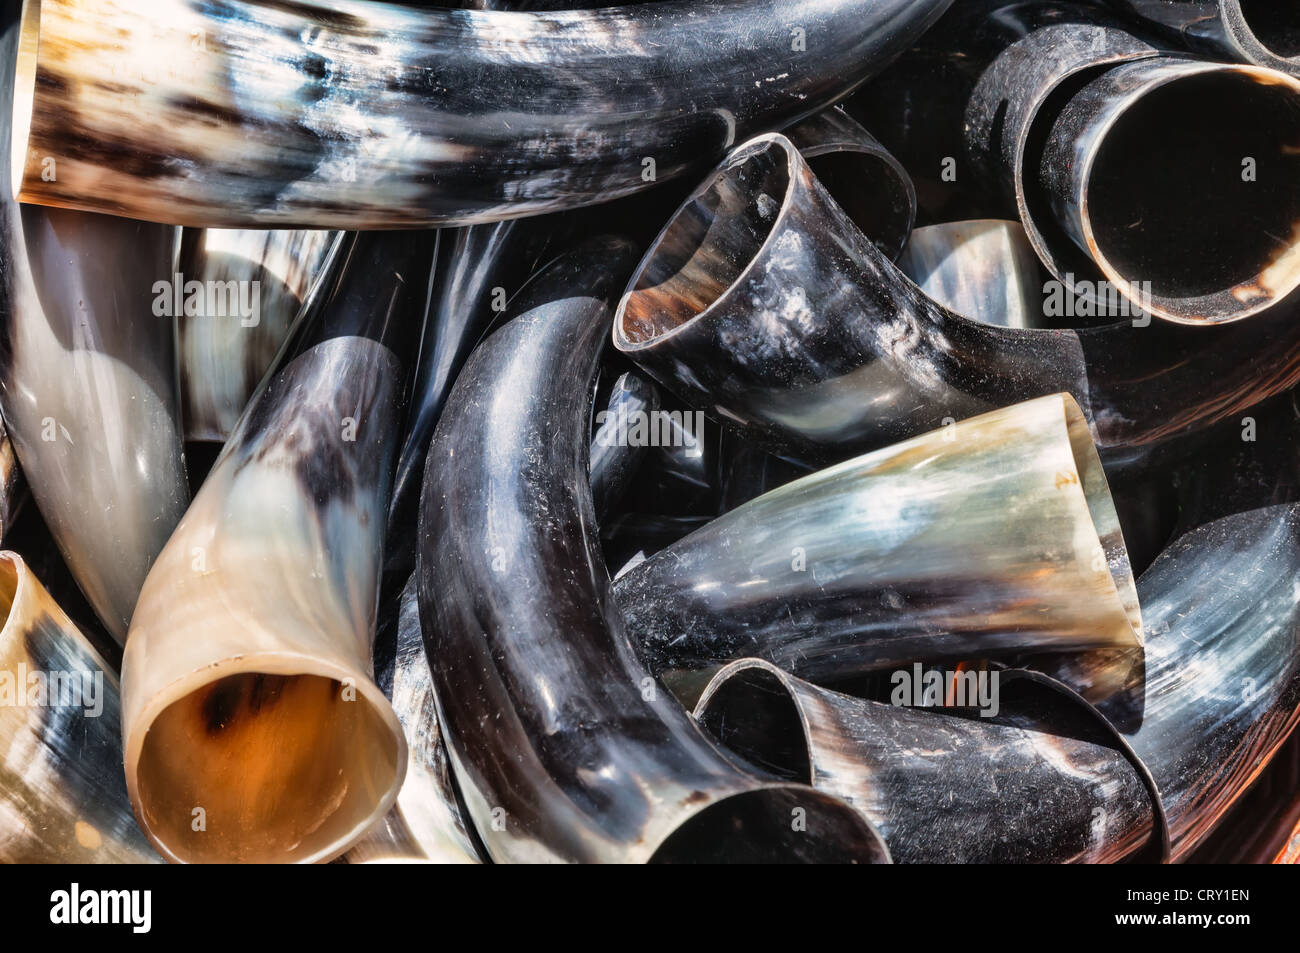 Beer horn made of cow horn - Stock Image